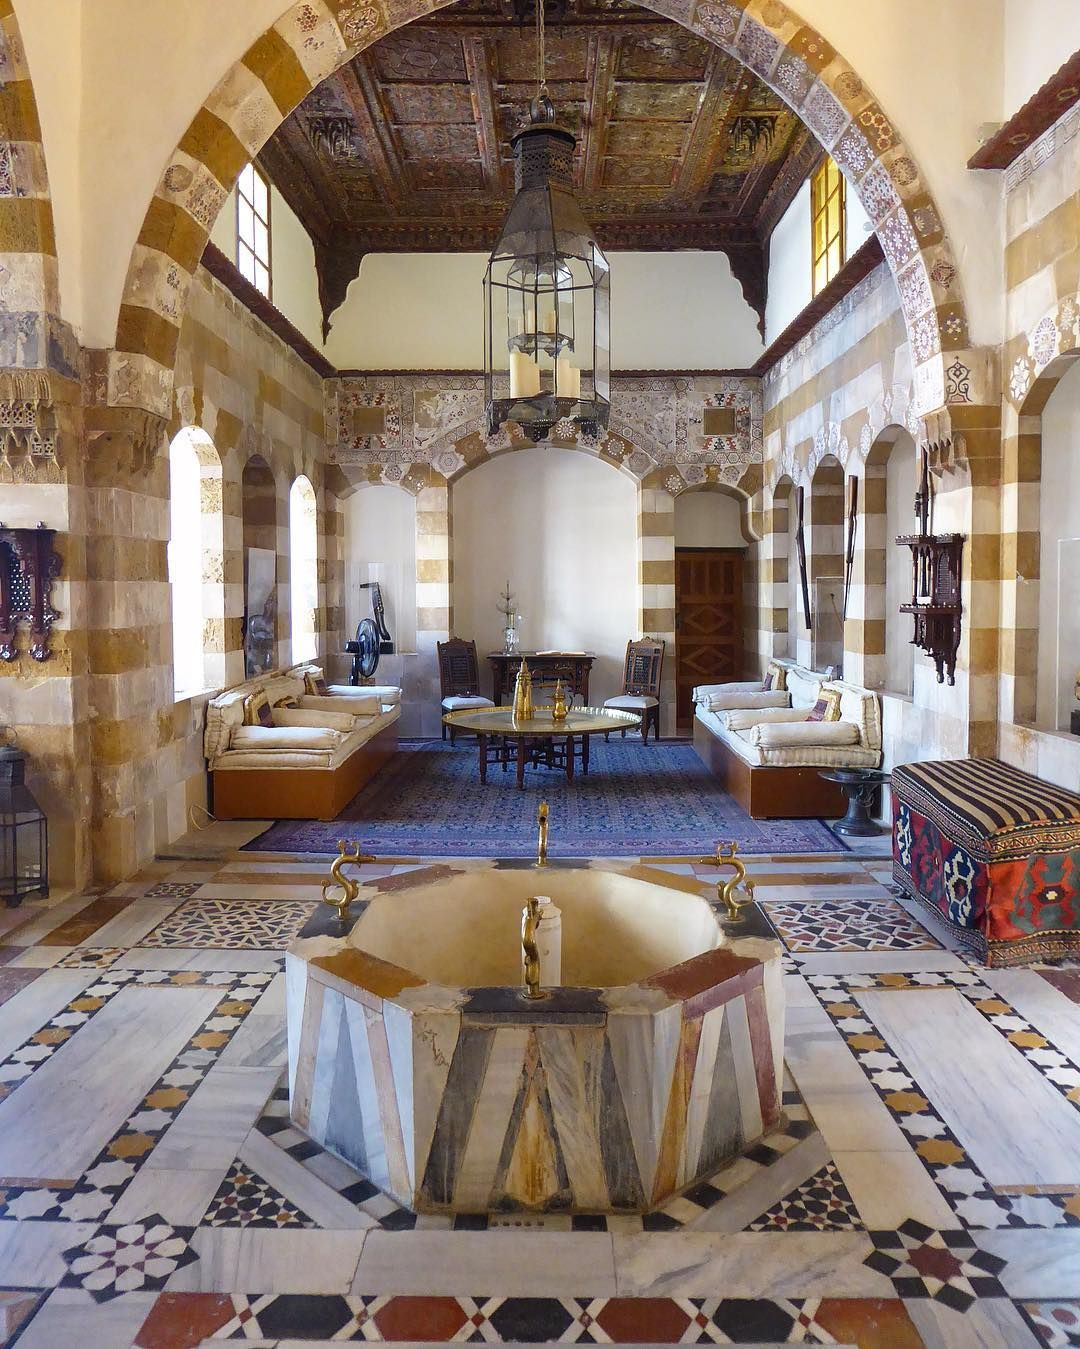 The 18th Century Arab Ottoman Debbane Palace In The Old City Of